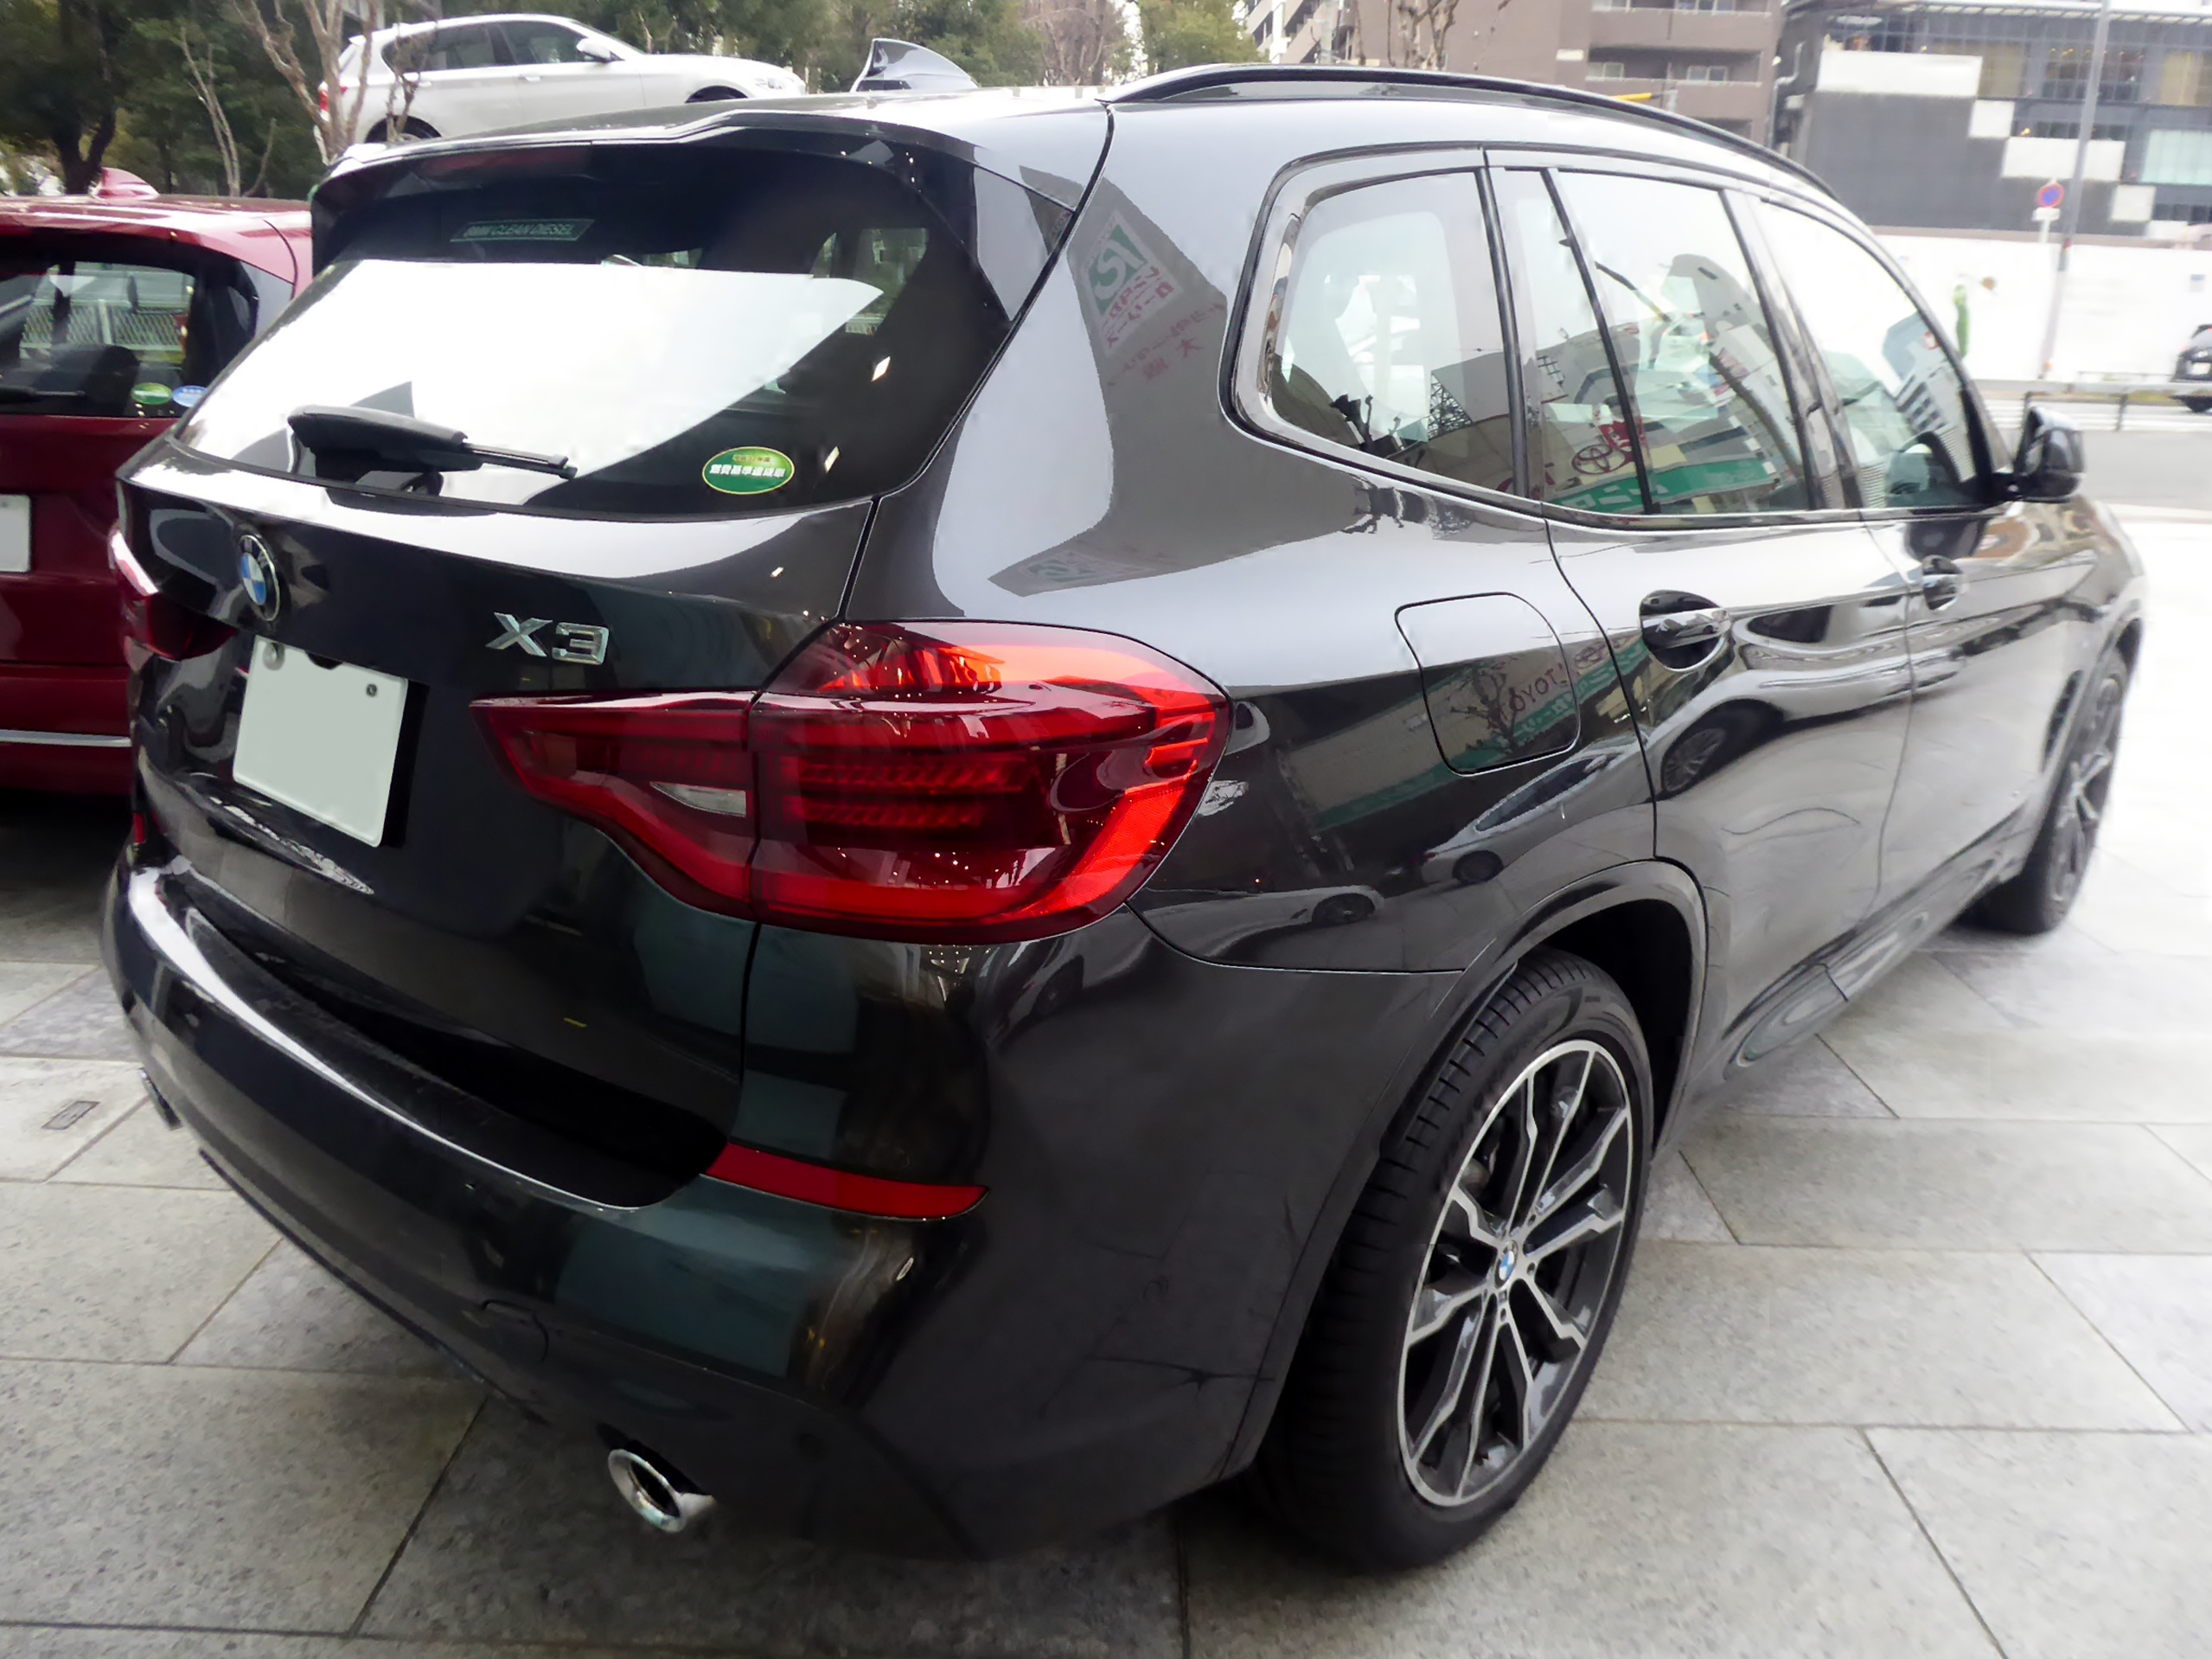 File Bmw X3 Xdrive20d M Sport G01 Rear Jpg Wikimedia Commons